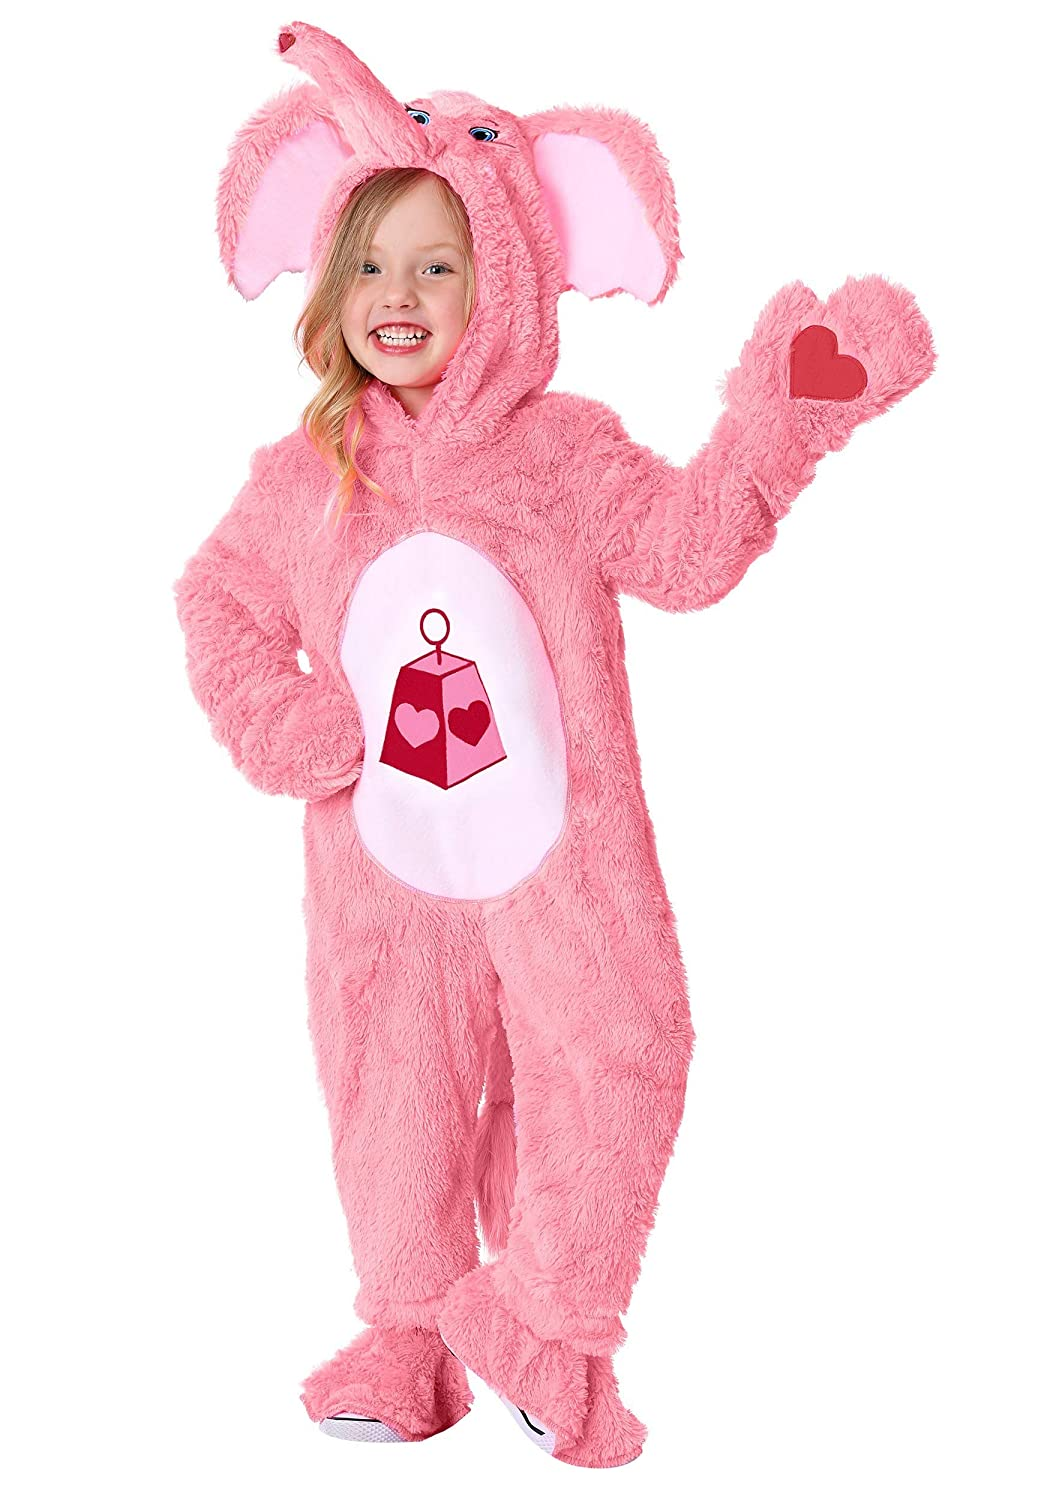 4T Care Bears & Cousins Toddler Lotsa Heart Elephant Costume 4T